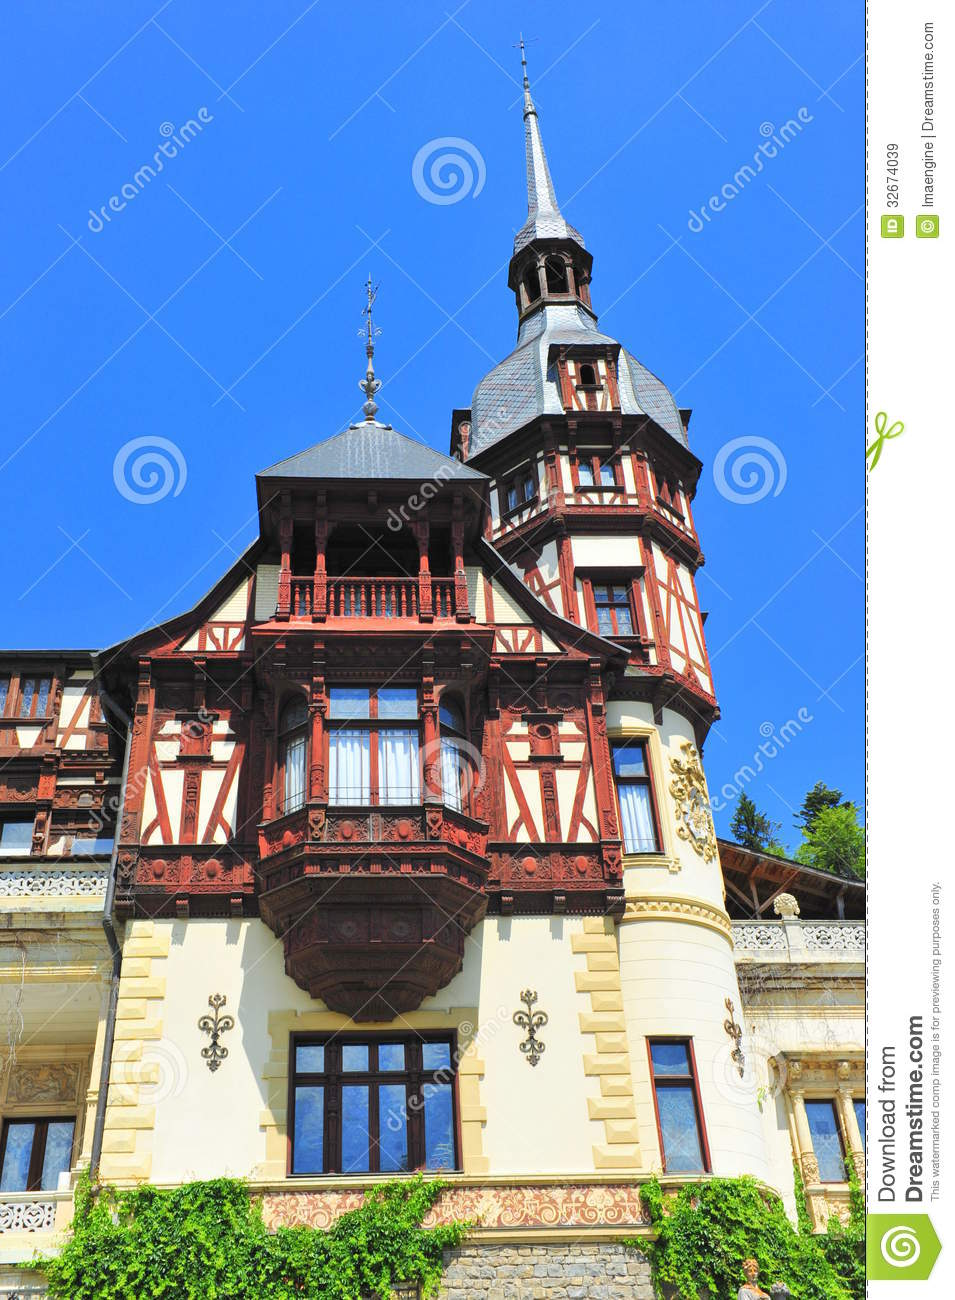 Baroque architectural style of peles castle royalty free for Baroque architecture elements